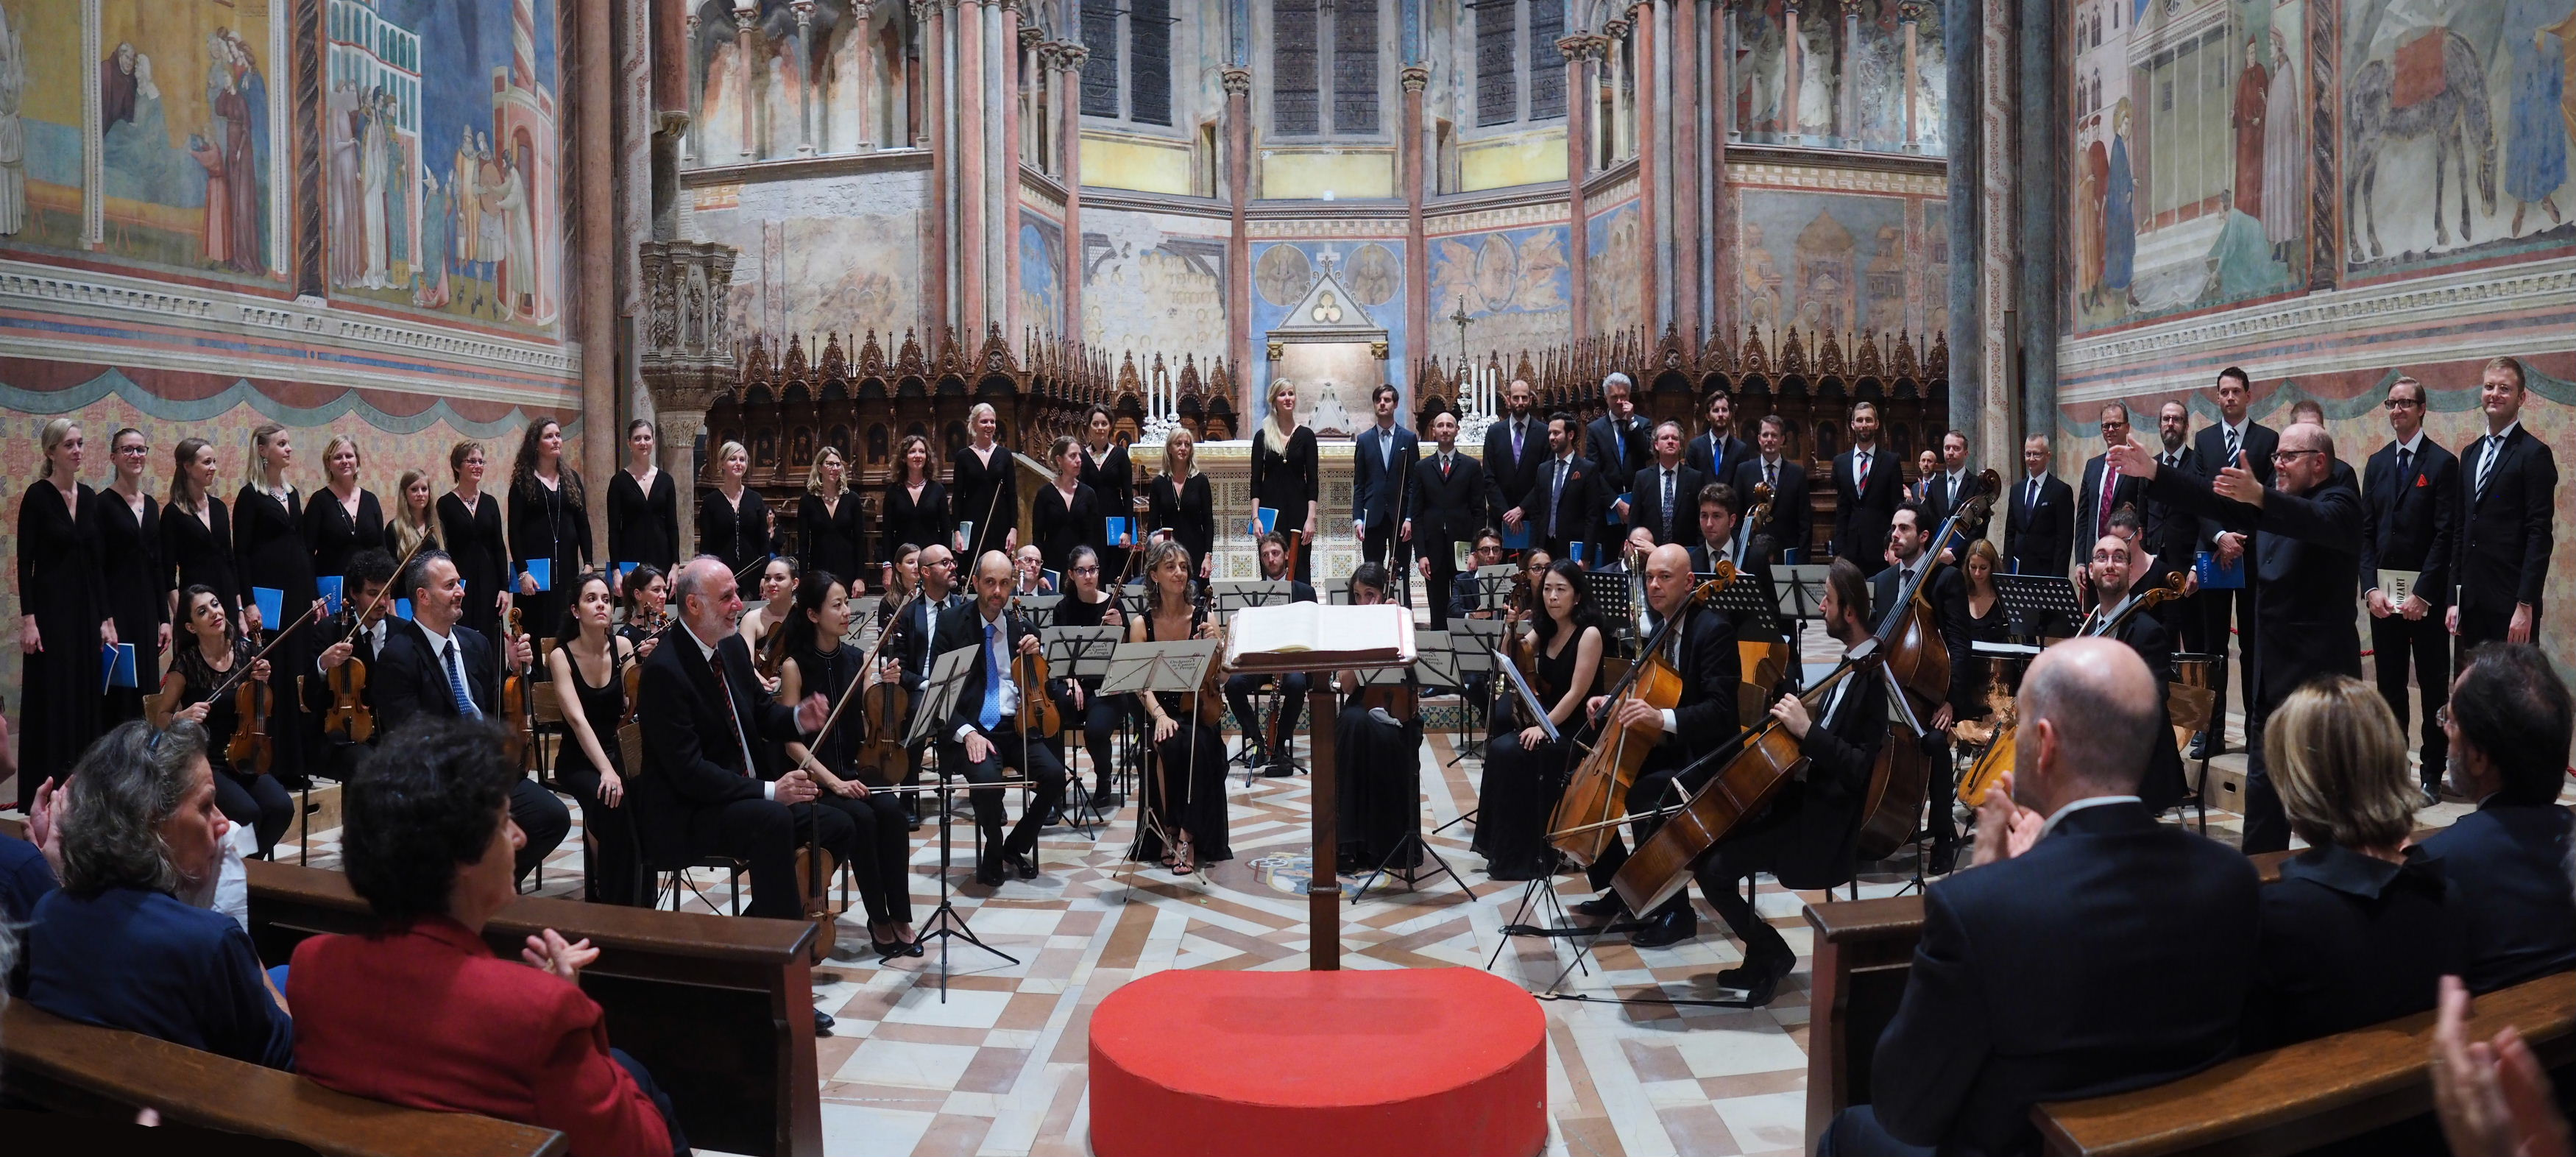 Basilica Papale di San Francesco in Assissi 2016 Mozart Requiem